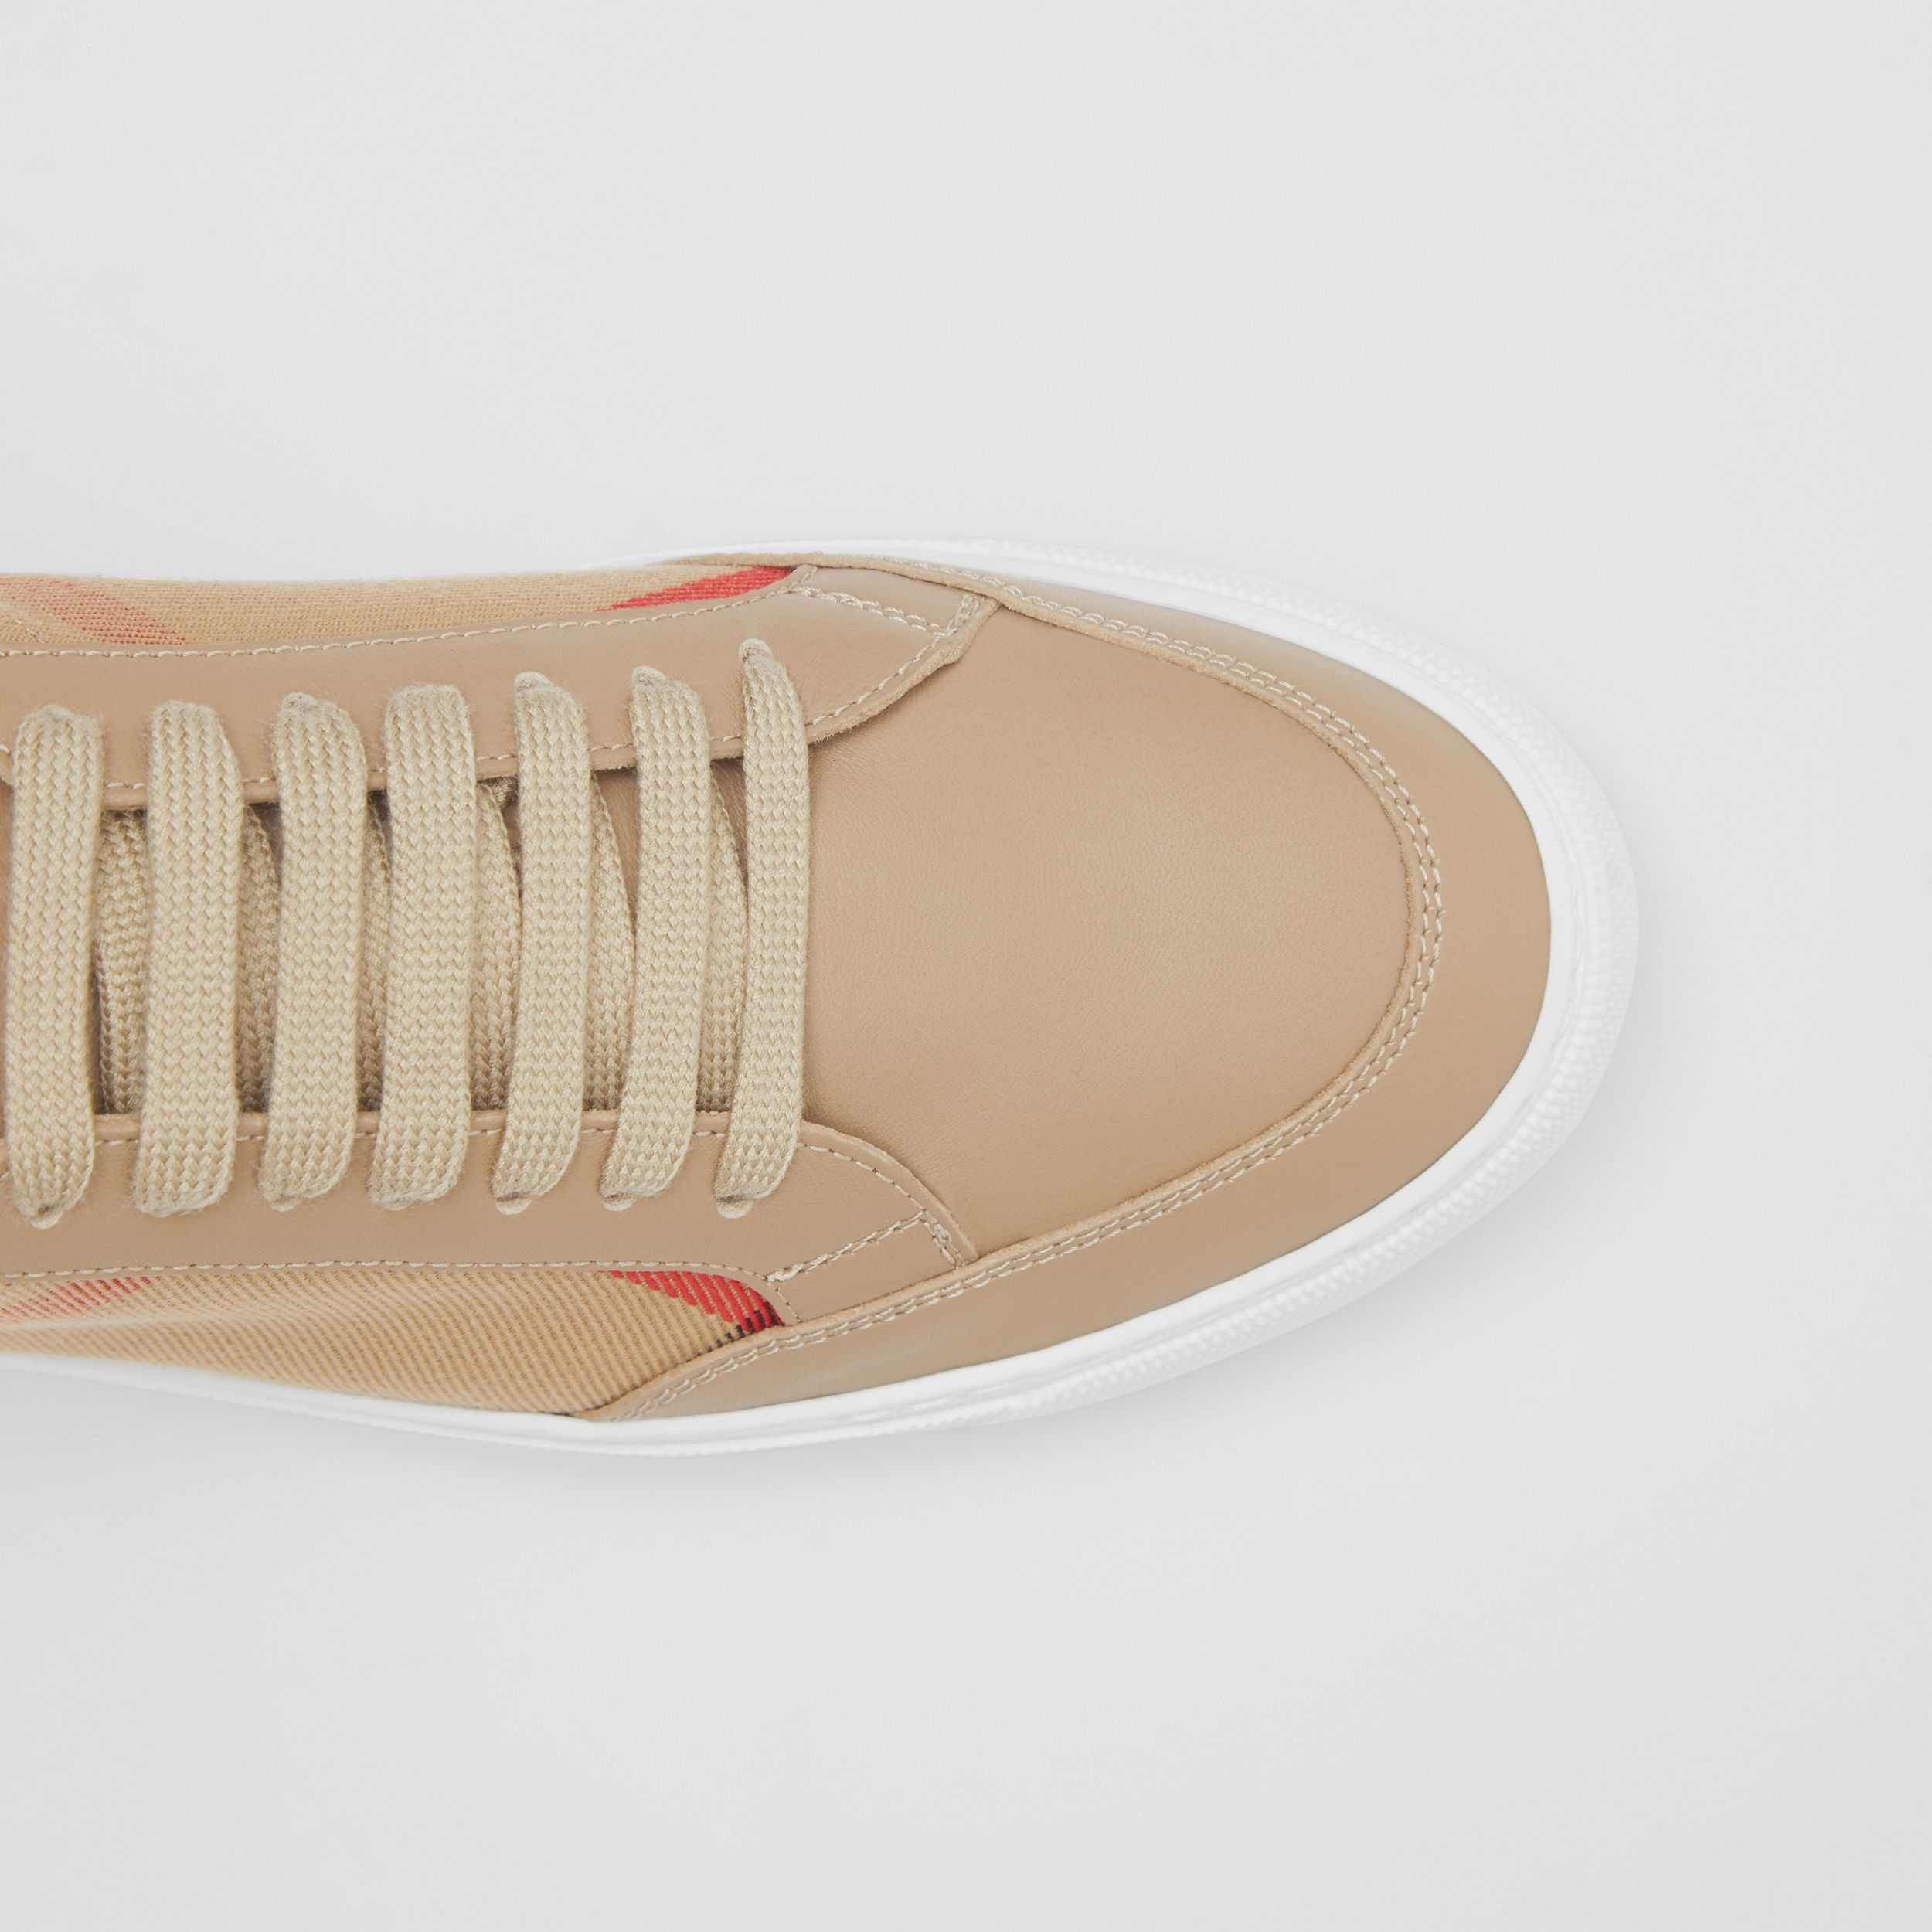 House Check and Leather Sneakers in Tan - Women | Burberry Australia - 2